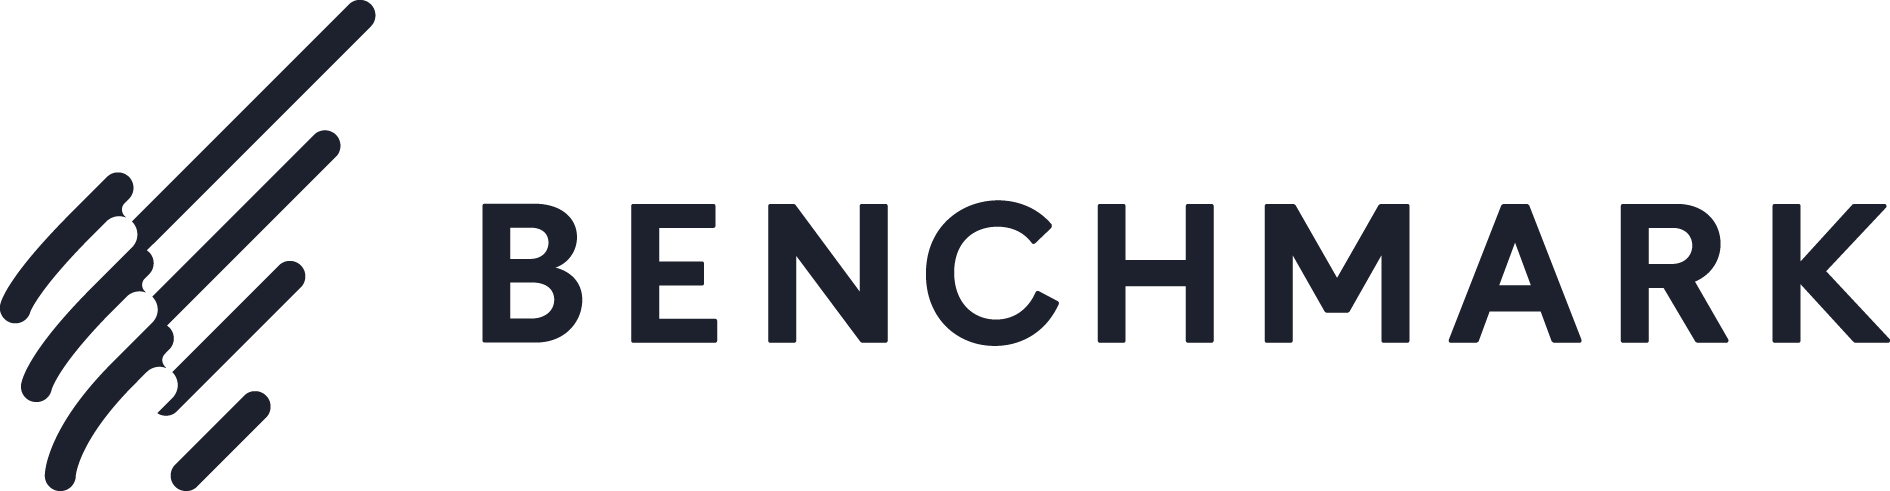 Benchmark Logo [Email] png